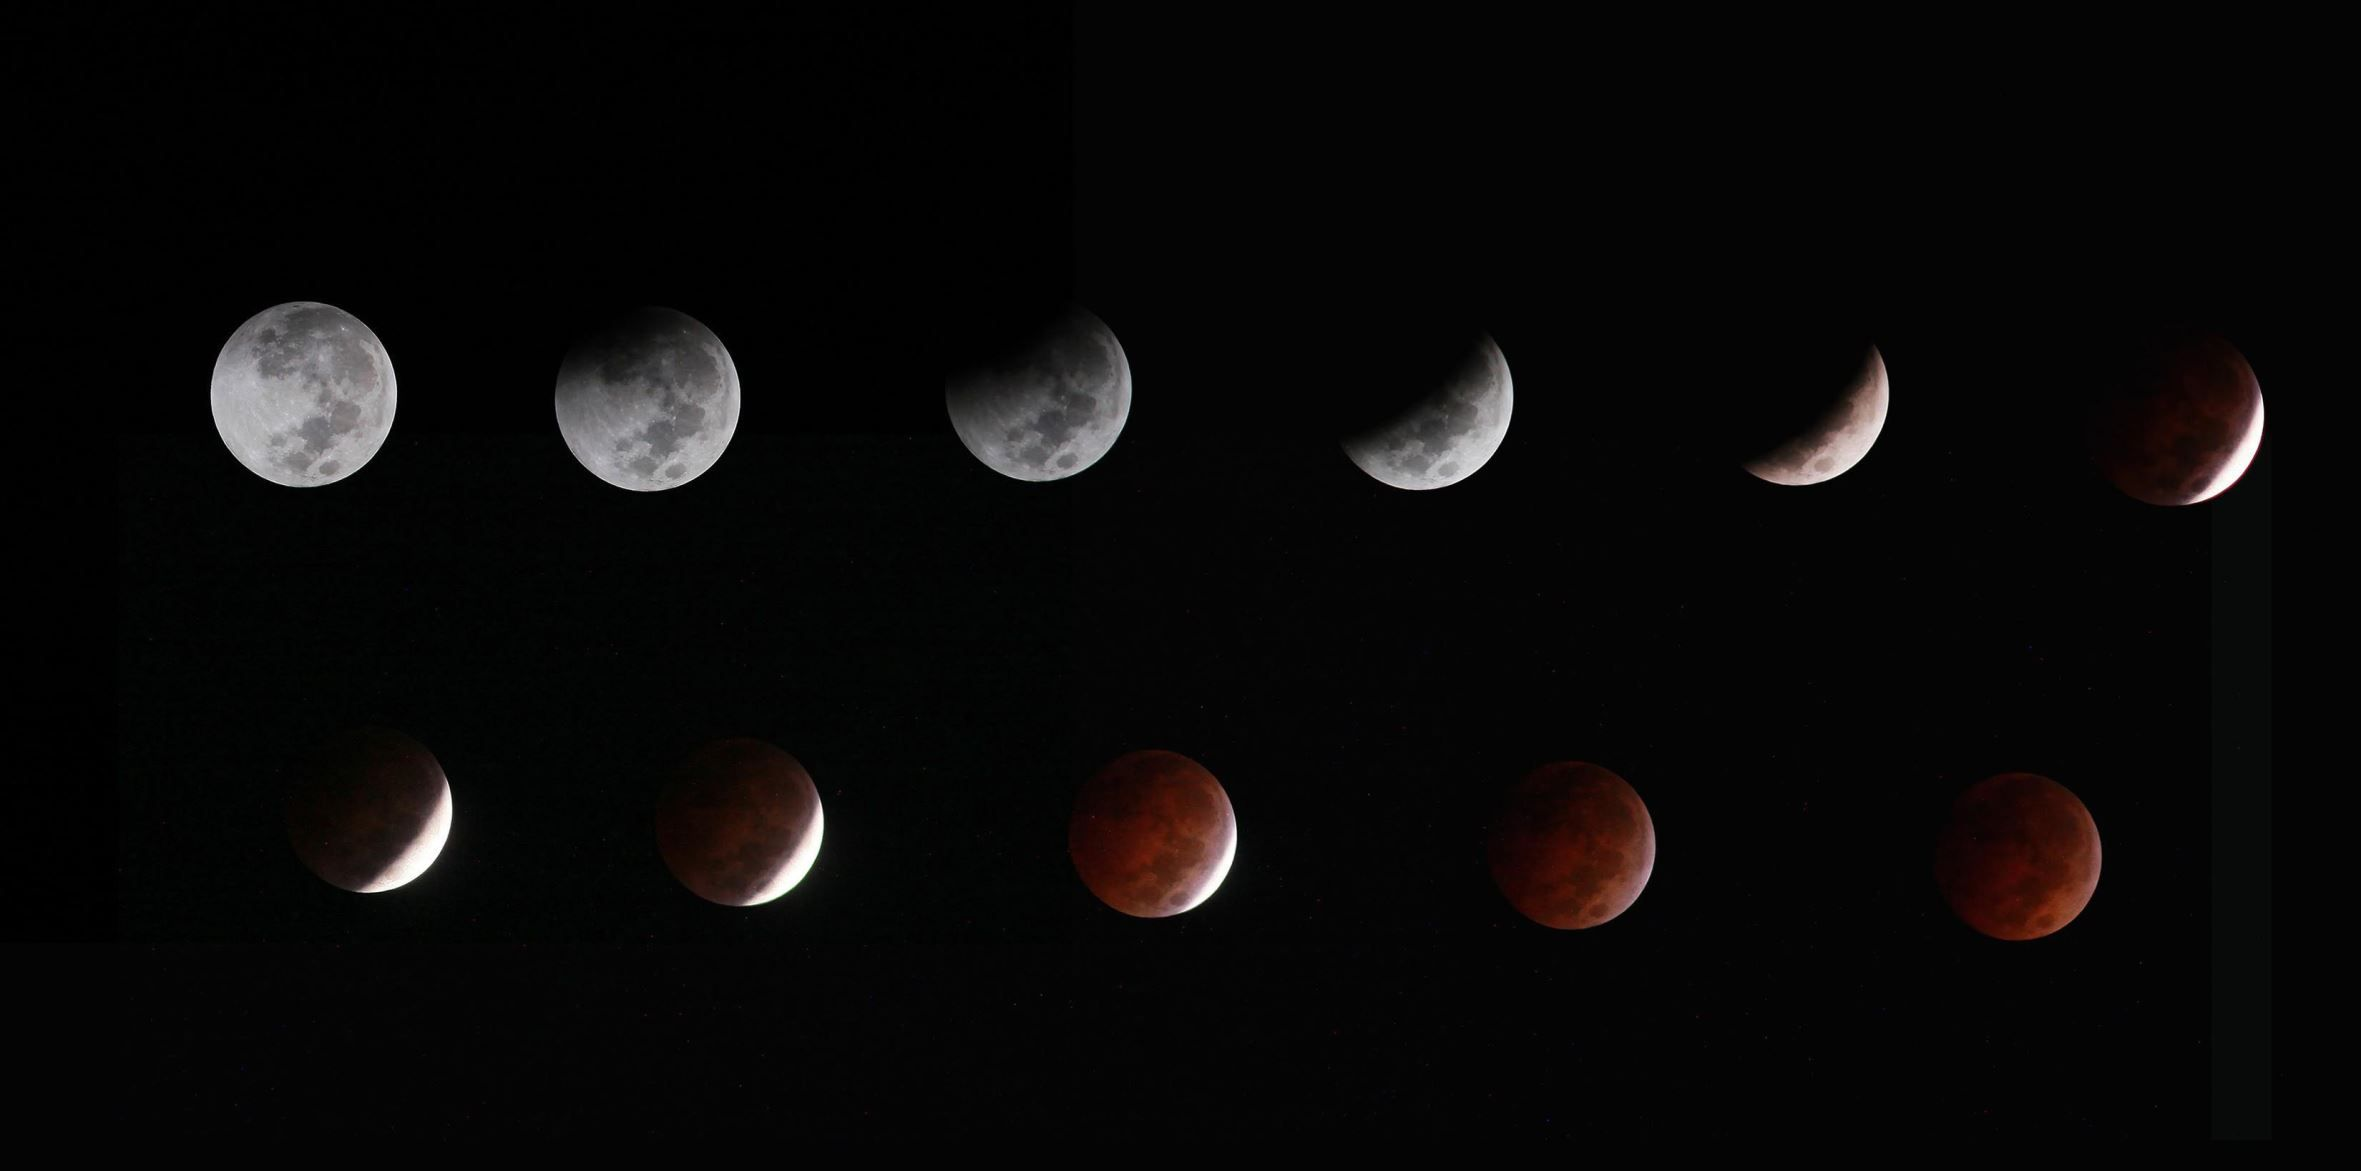 'Blood Moon' lunar eclipse by el Fotografo chingon de @manuelonvf